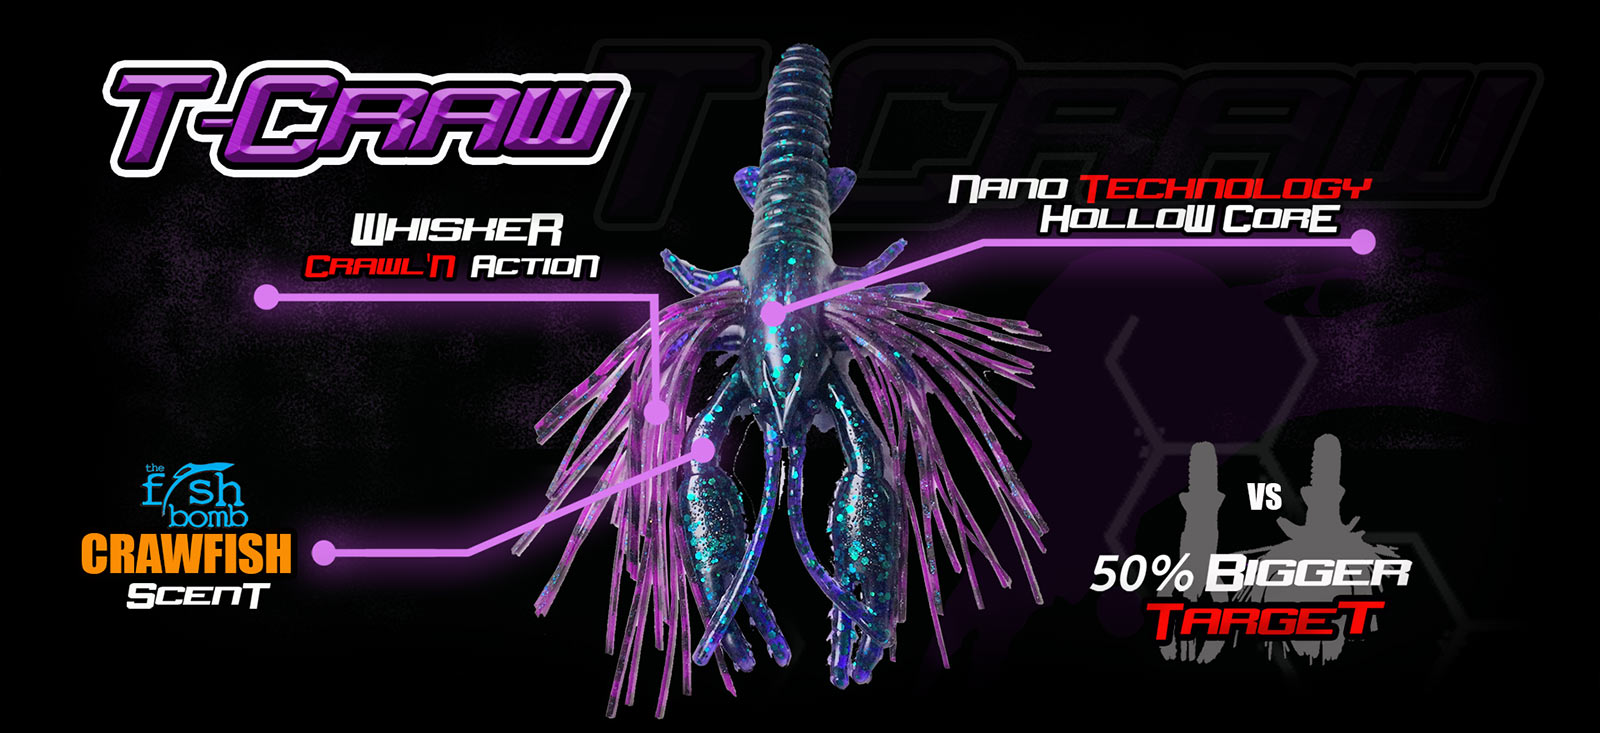 T Craw UV Bass Bait REV